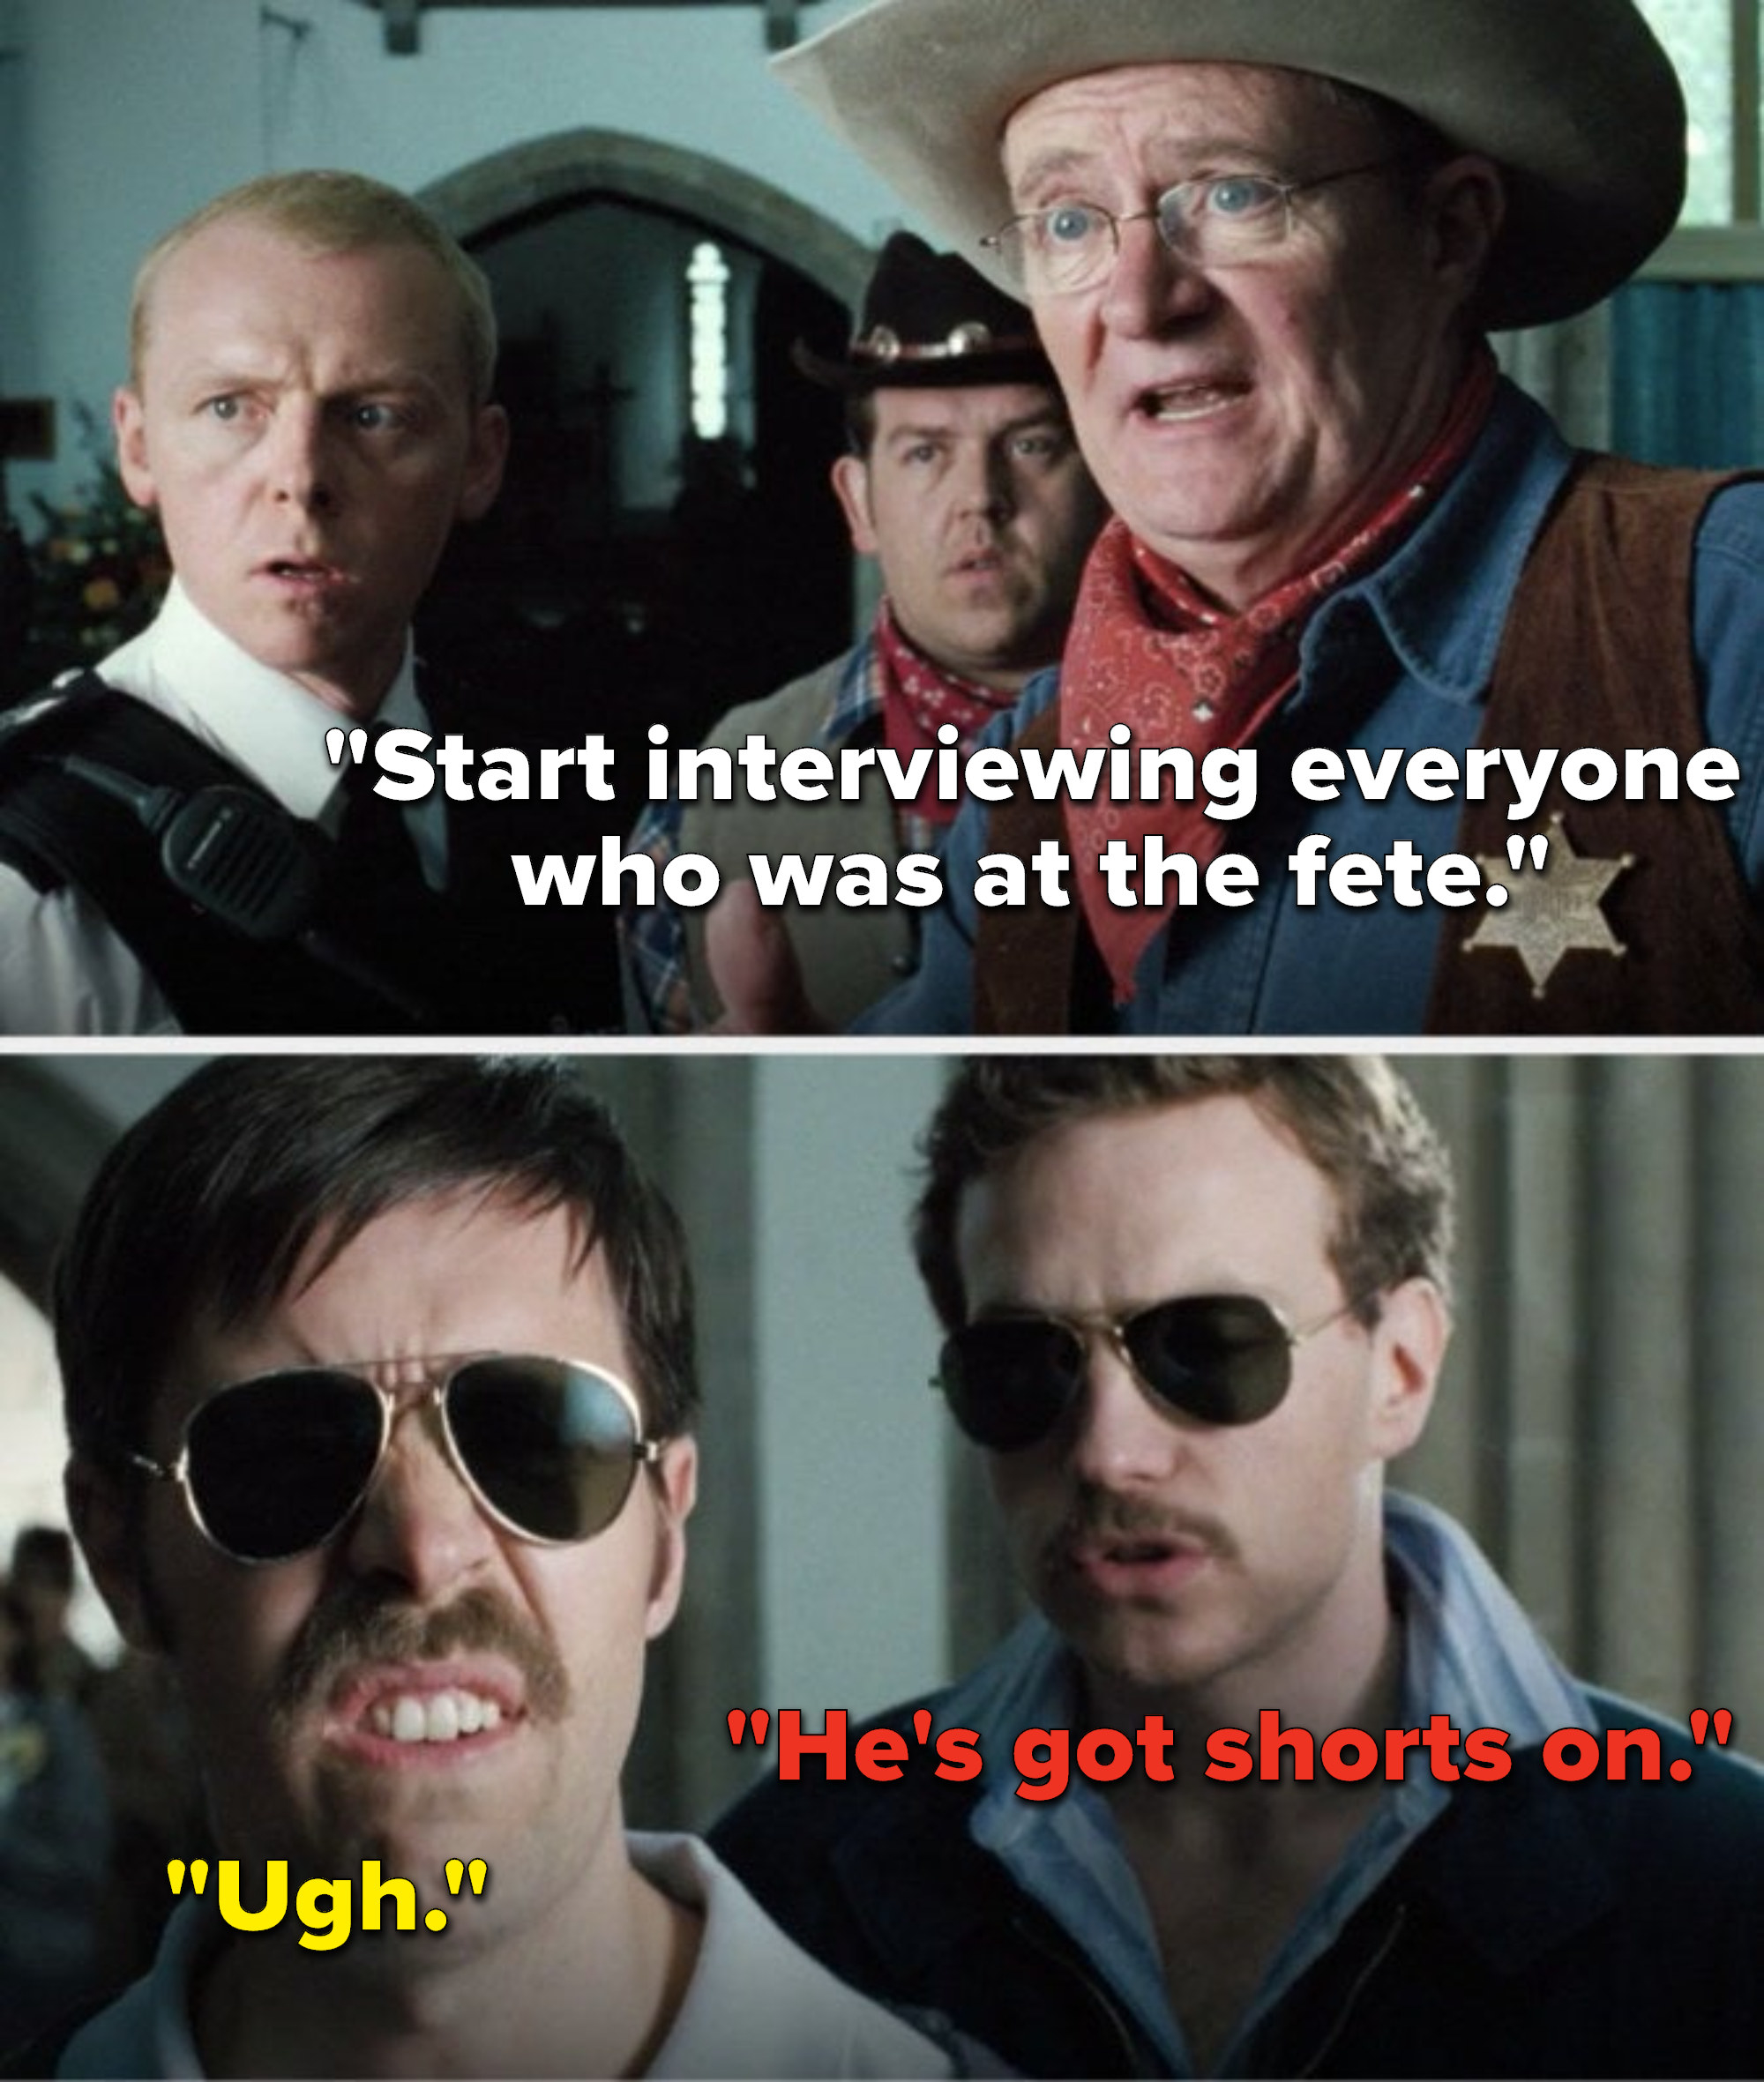 """Inspector Butterman says, """"Start interviewing everyone who was at the fete,"""" Detective Sergeant Andy says, """"Ugh,"""" and Detective Constable Andy says, """"He's got shorts on"""""""